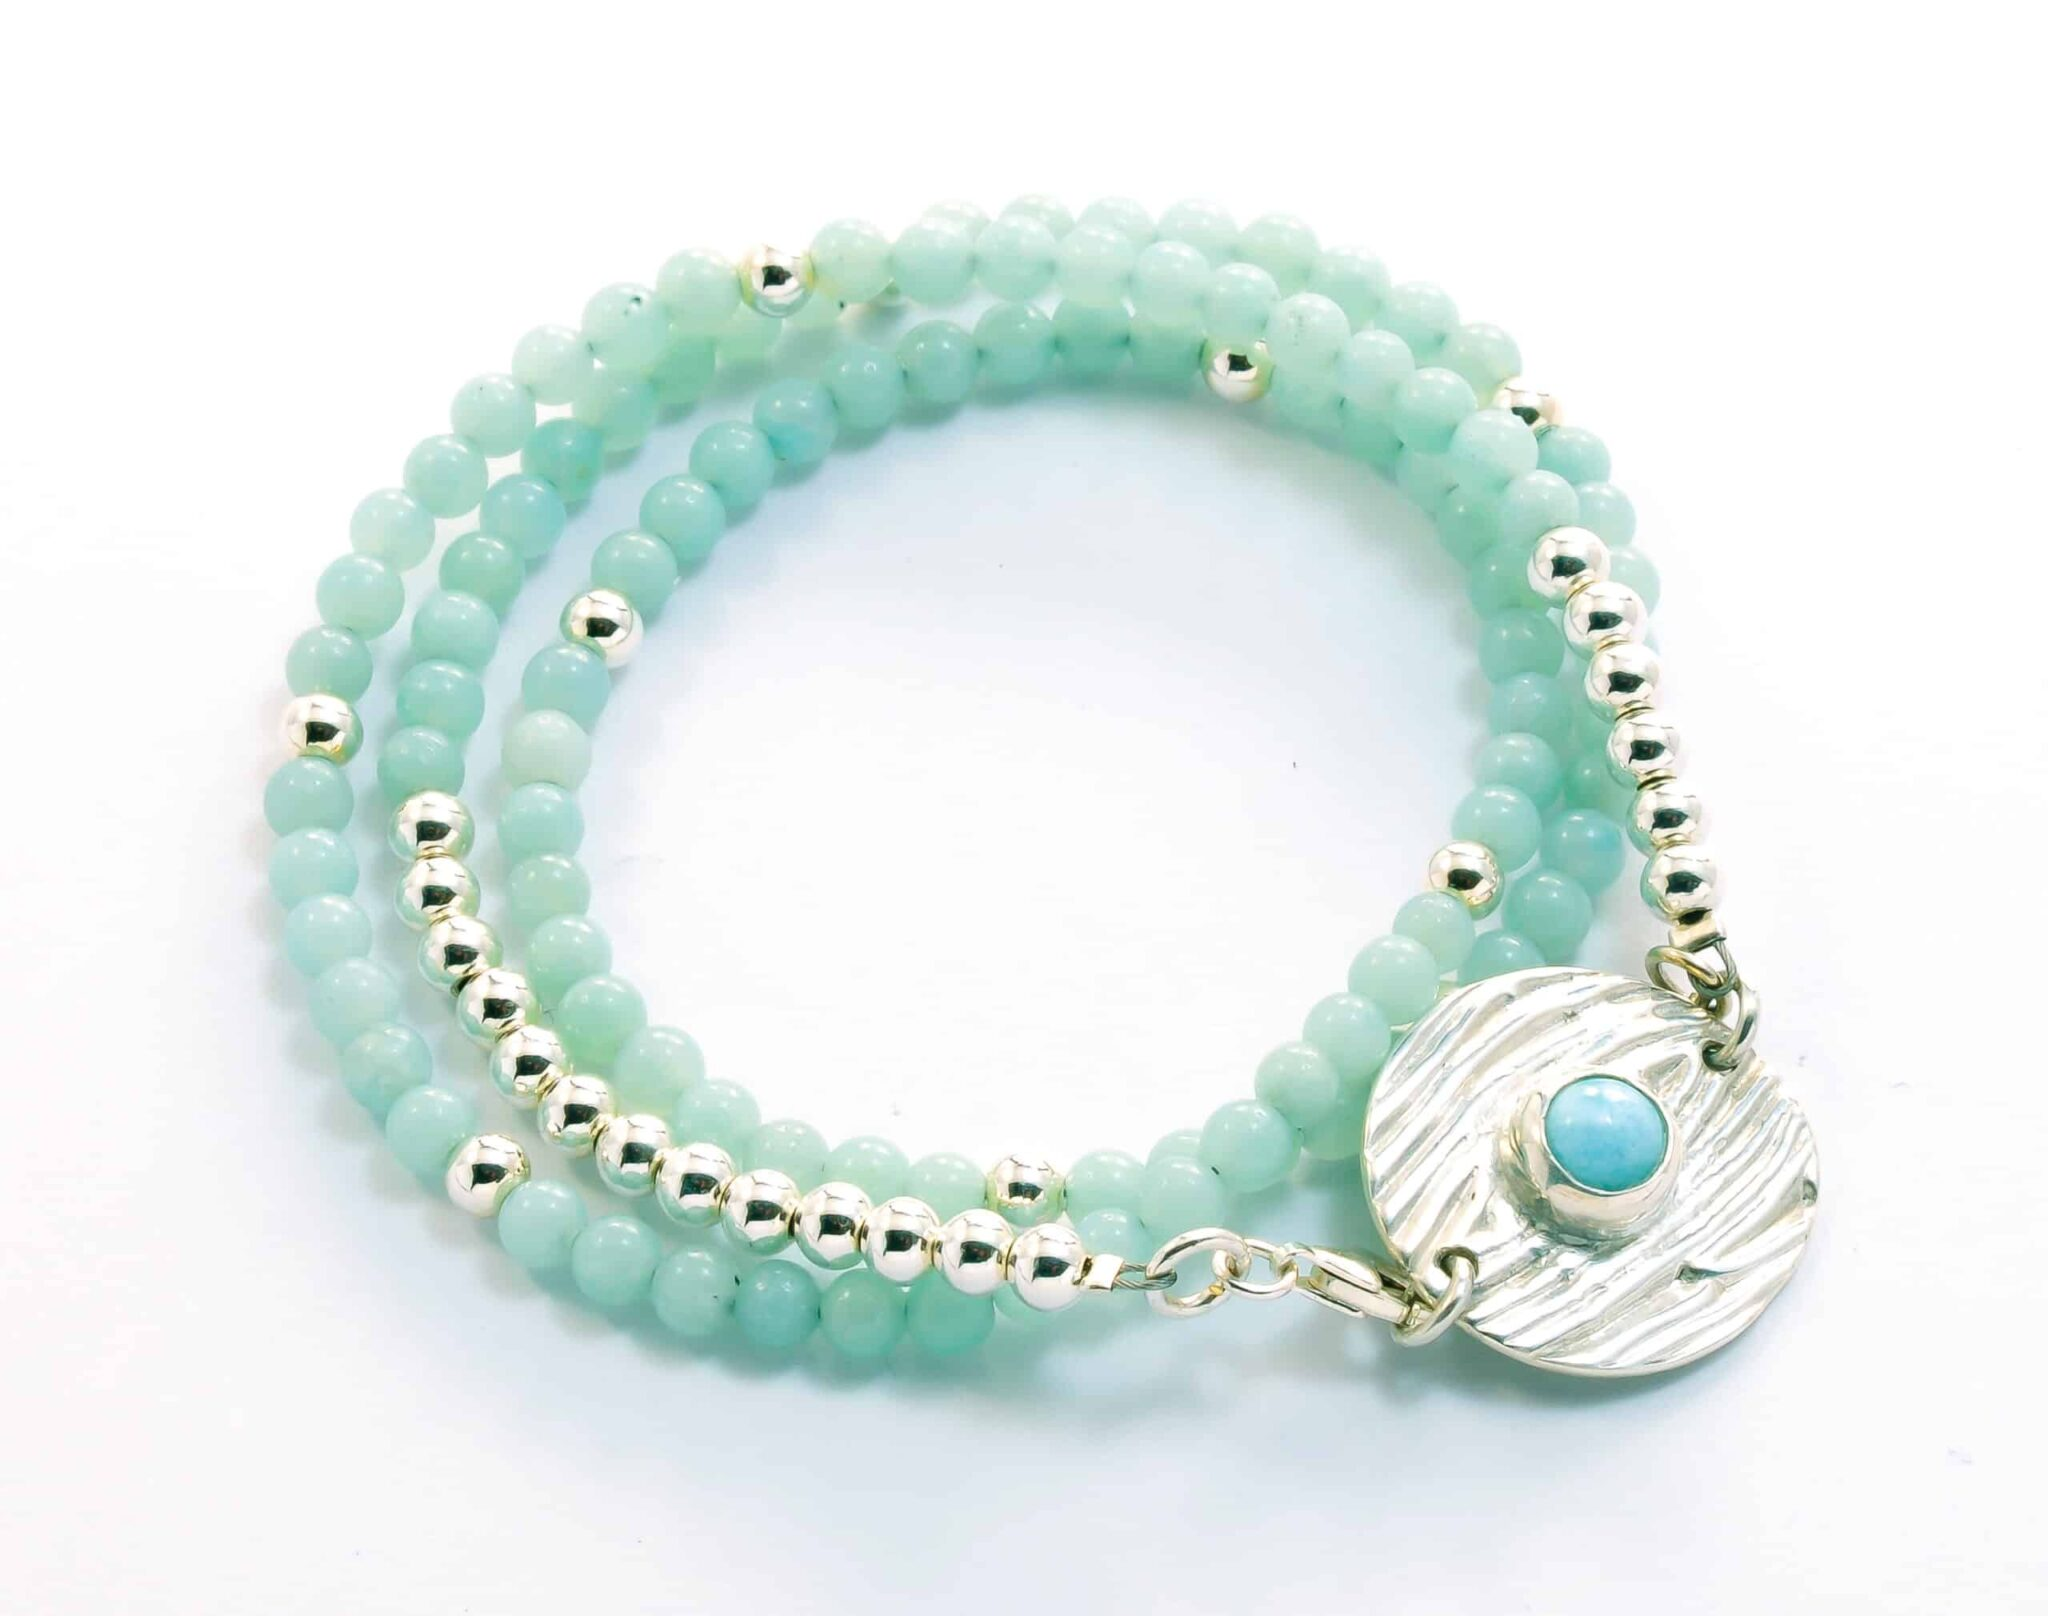 Maroochydore-amazonite-and-sterling-silver-beaded-wrap-bracelet-with-cabachon-set-disc-126046-juliestephens